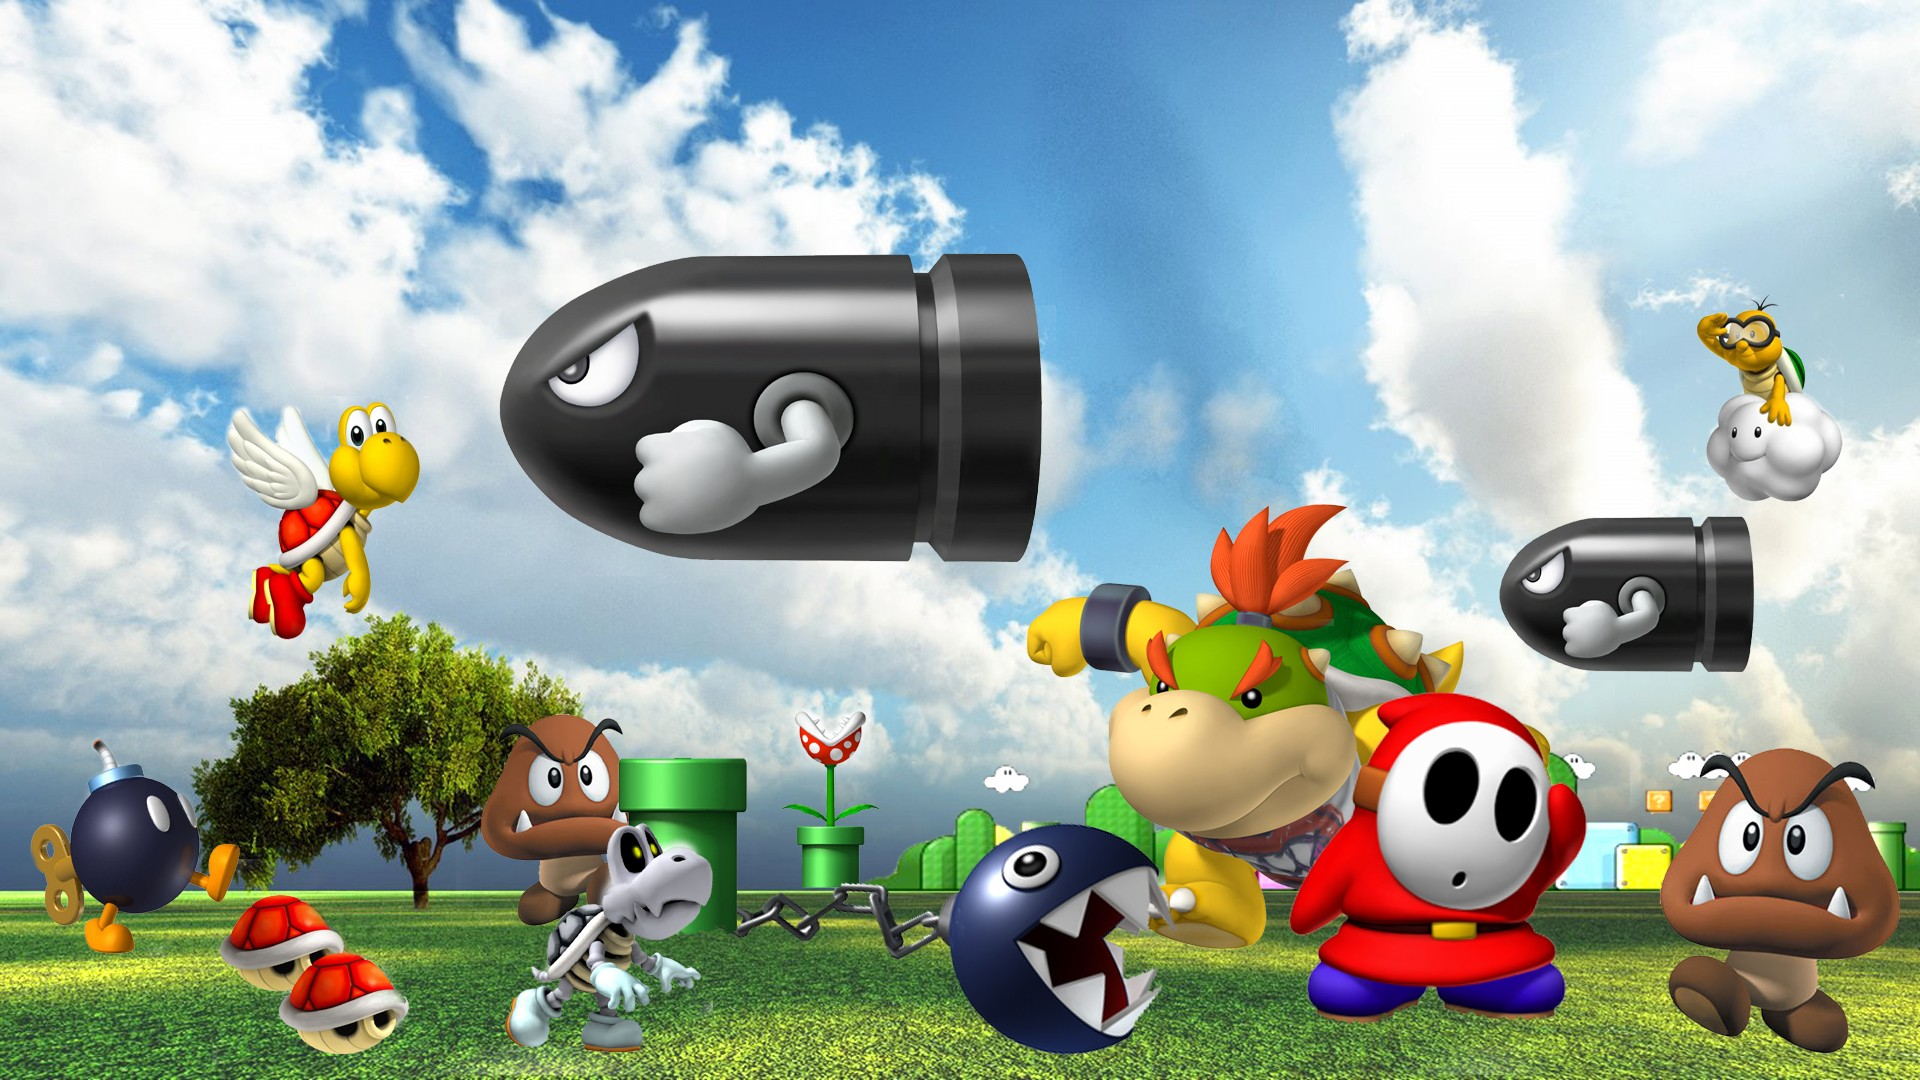 Shy Guy Iphone Wallpaper Super Mario 64 Full Hd Wallpaper And Background Image